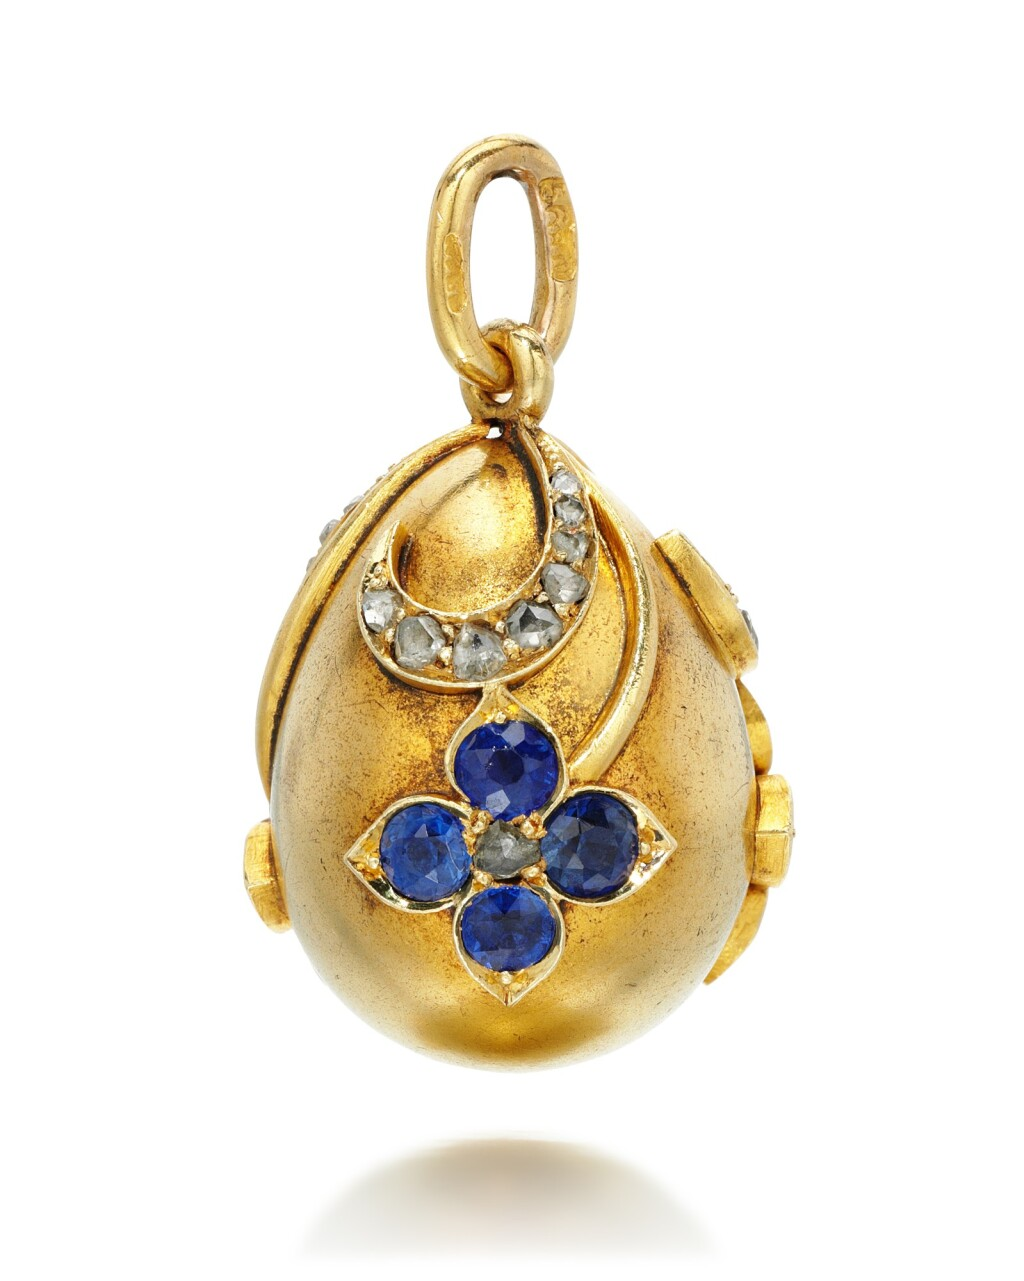 A JEWELLED GOLD EGG PENDANT, ST PETERSBURG, 1899-1903